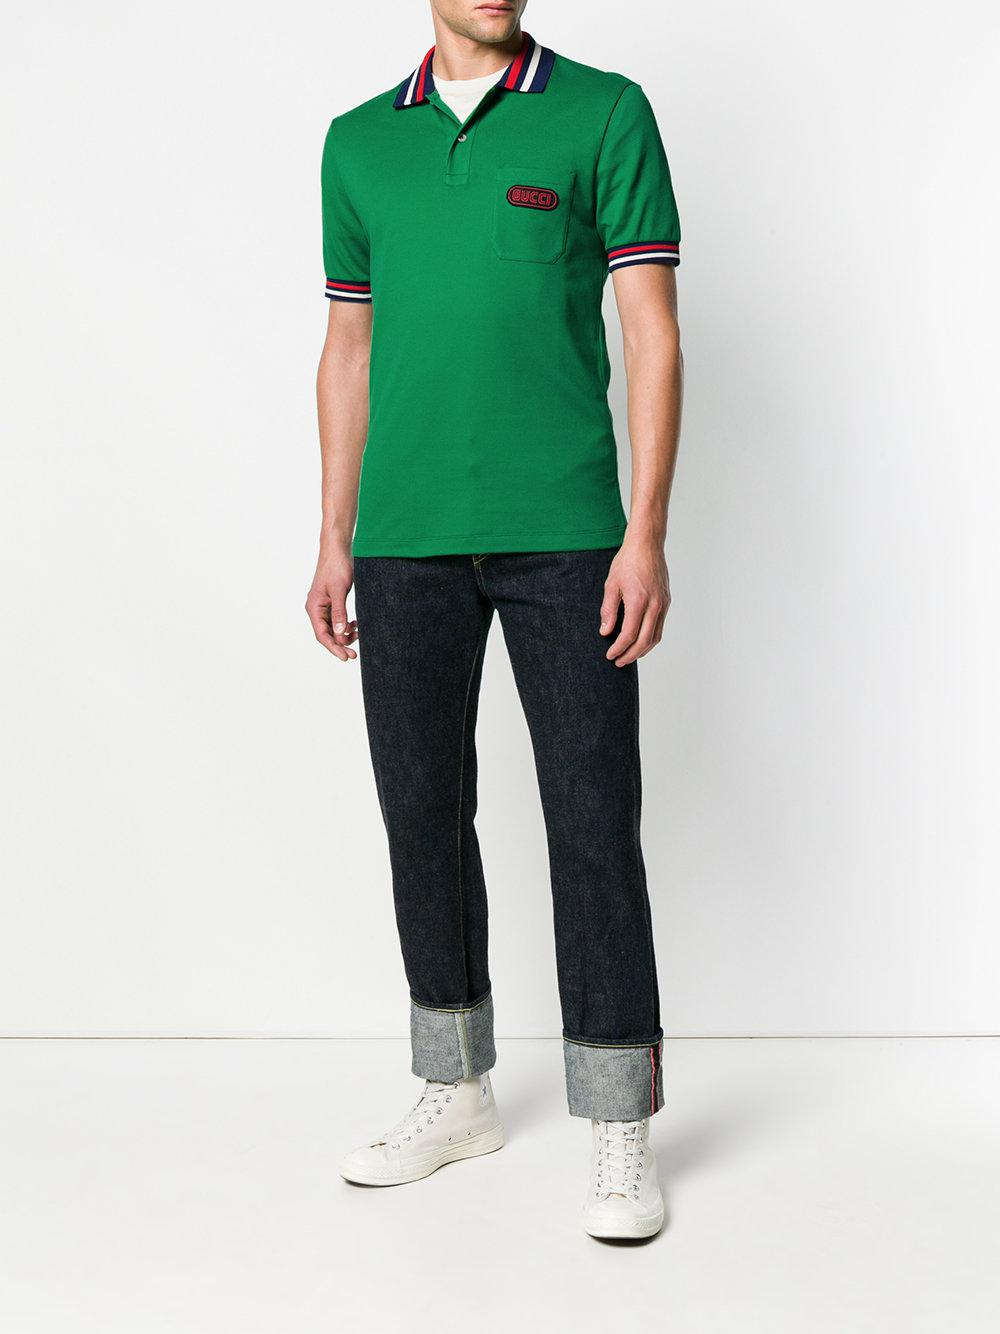 09361913a Gucci Logo Patch Polo Shirt in Green for Men - Lyst